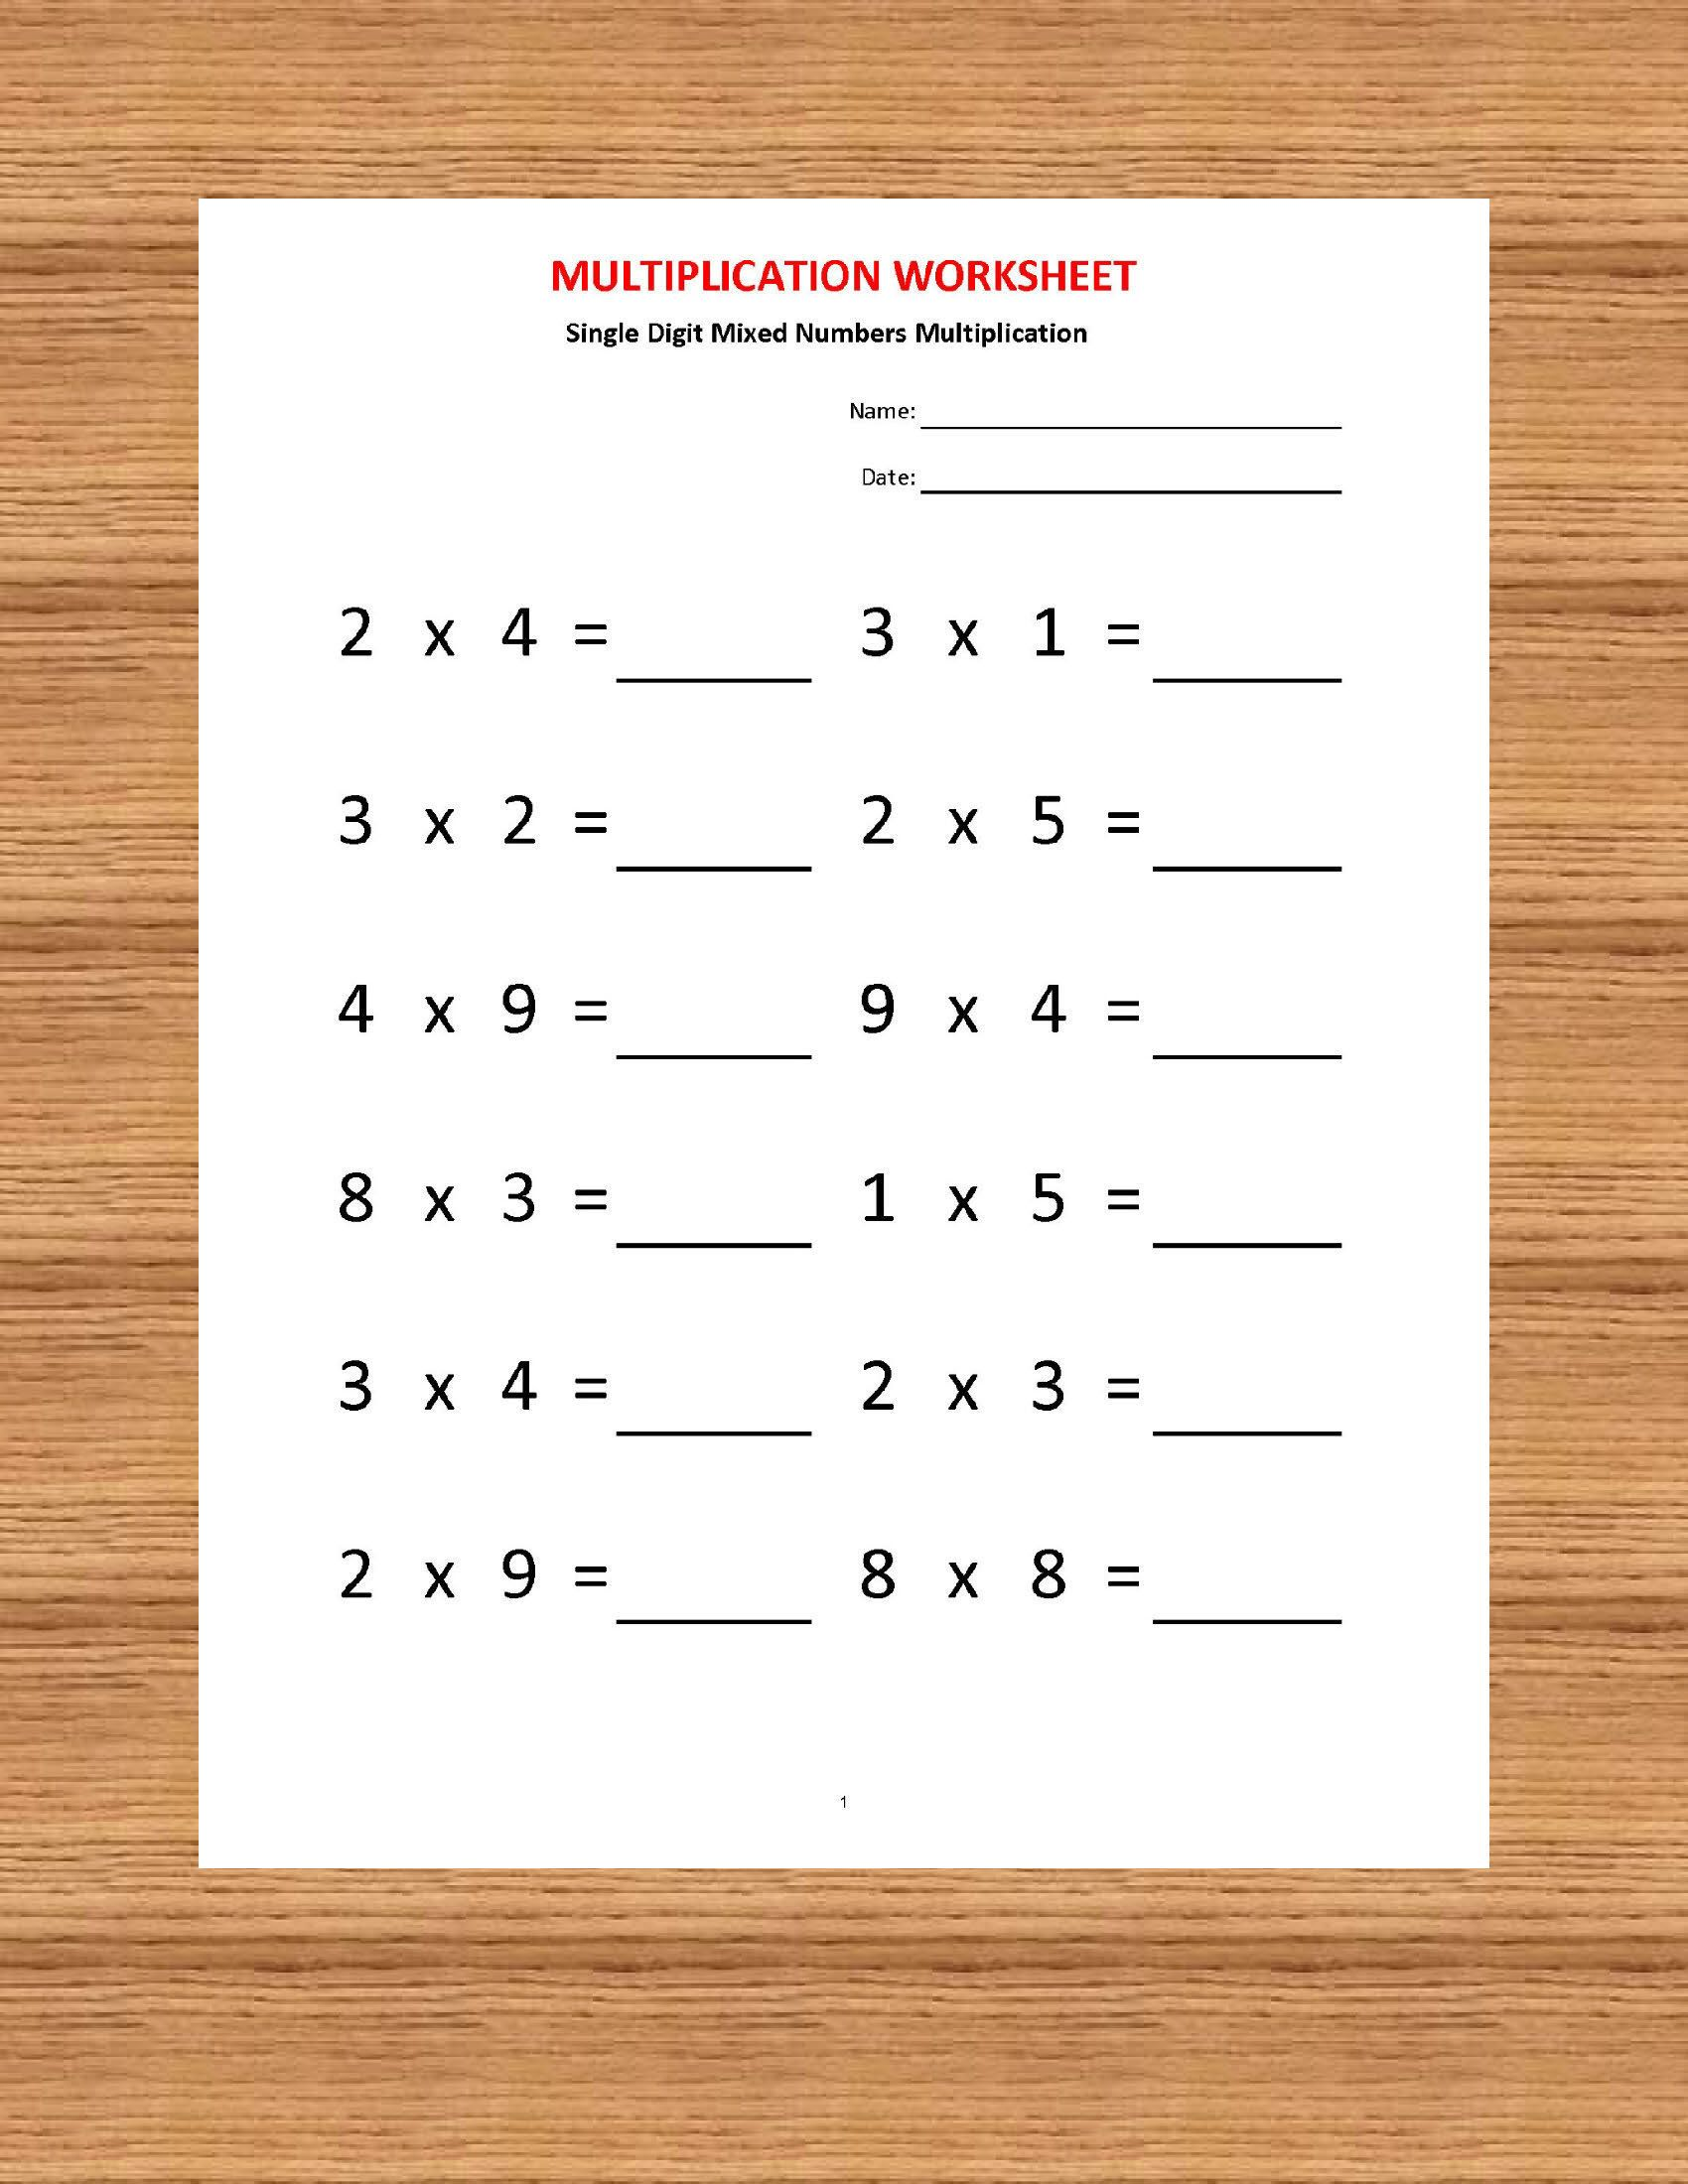 Multiplication Worksheets Printable Worksheets Etsy 2nd Grade Worksheets Math Fact Worksheets 2nd Grade Math Worksheets